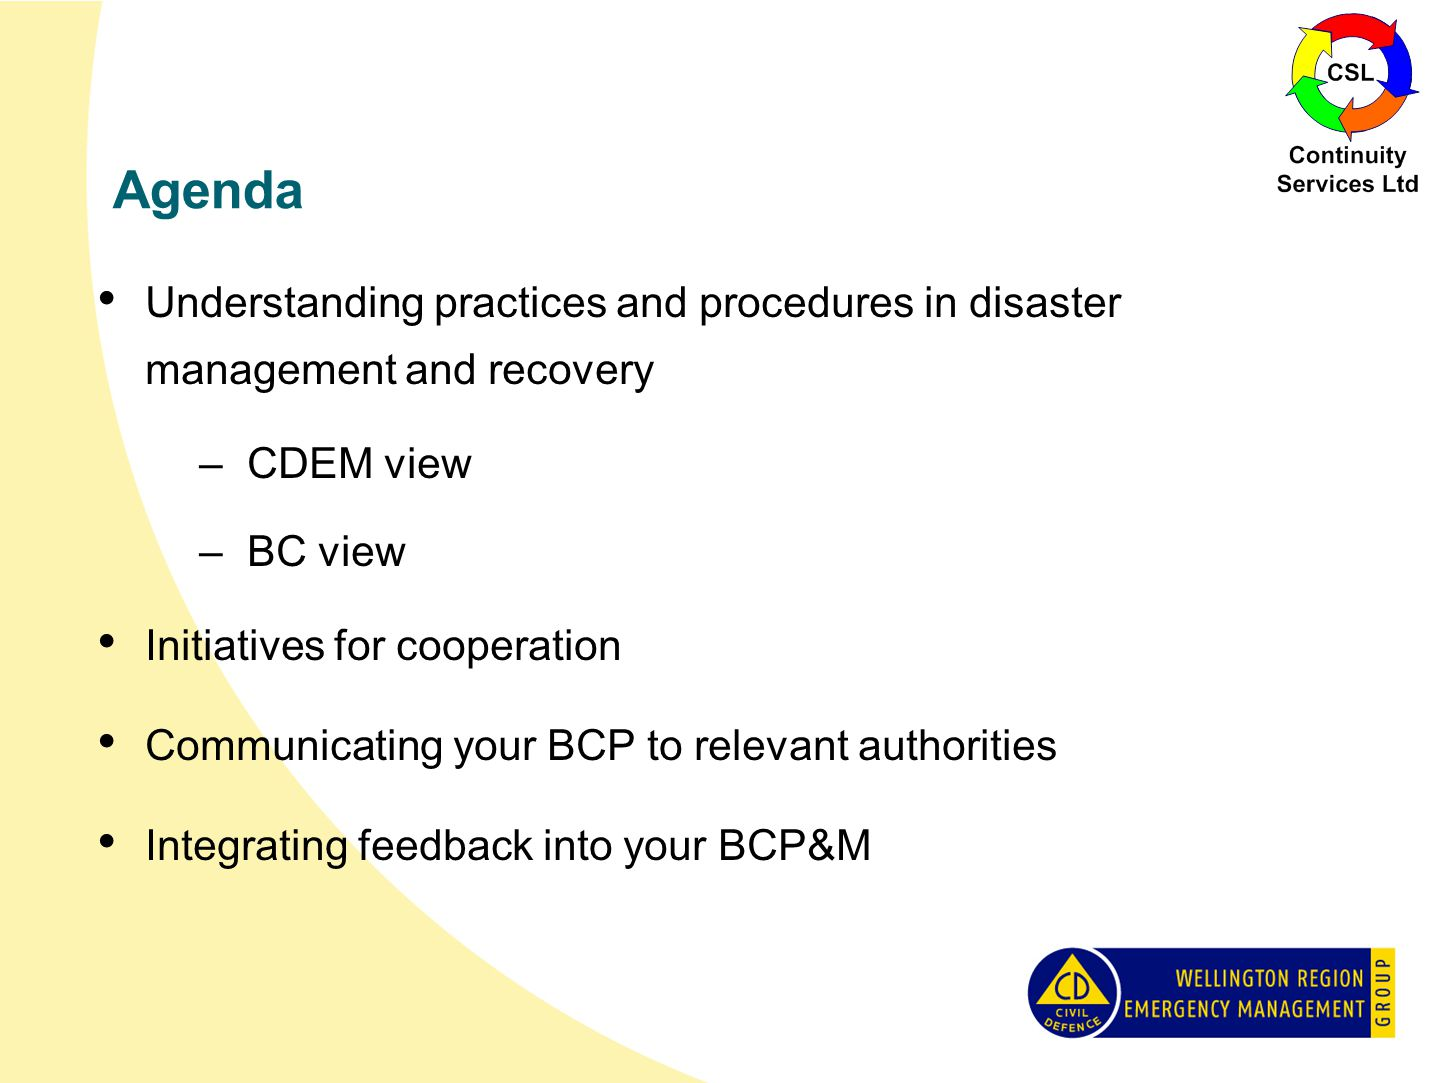 Agenda Understanding practices and procedures in disaster management and recovery –CDEM view –BC view Initiatives for cooperation Communicating your BCP to relevant authorities Integrating feedback into your BCP&M